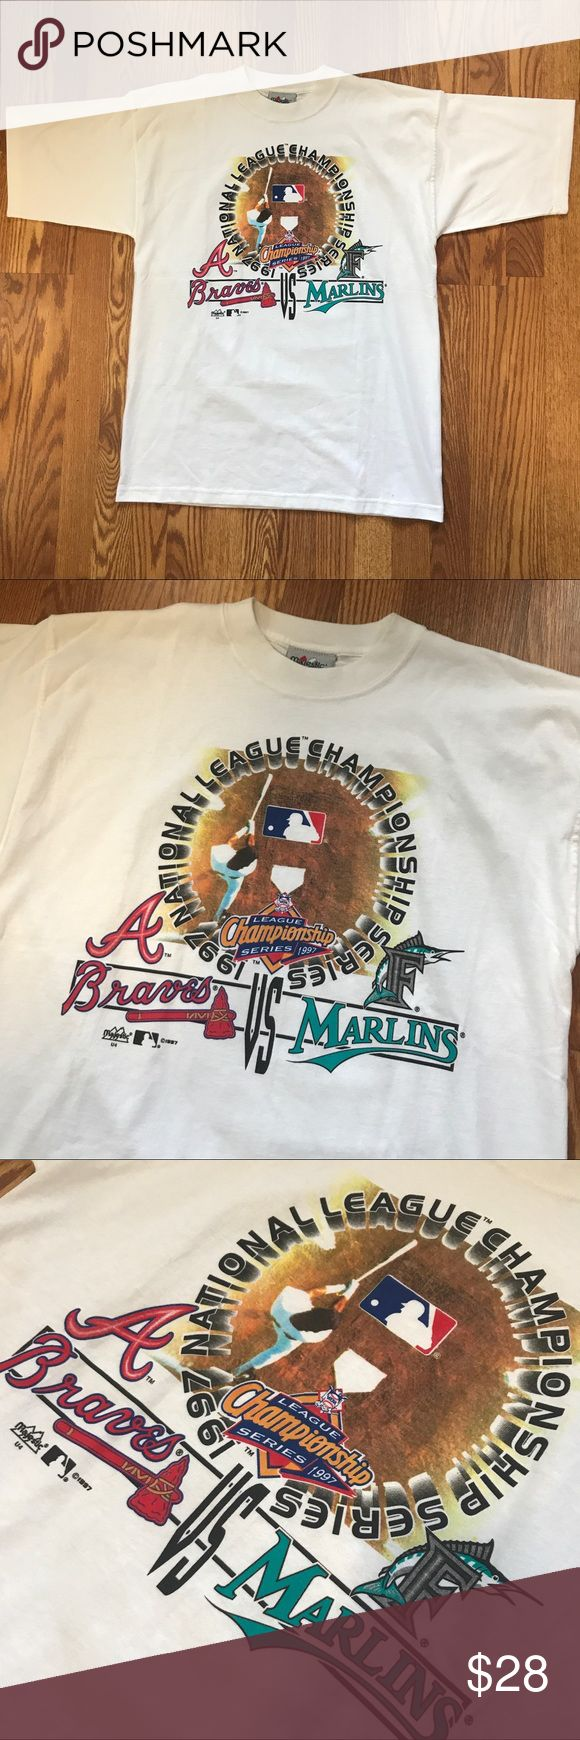 Vtg 1997 national league champs braves vs marlins Vintage 1997 National league Championship Braves Vs Marlins graphic T Shirt. Awesome era piece. Very clean, no notable imperfections.  Condition: 9+/10 Color: White  Size: Large    I ship out fast with tracking! Measurements upon request. Subject to tiny imperfections. Majestic Shirts Tees - Short Sleeve